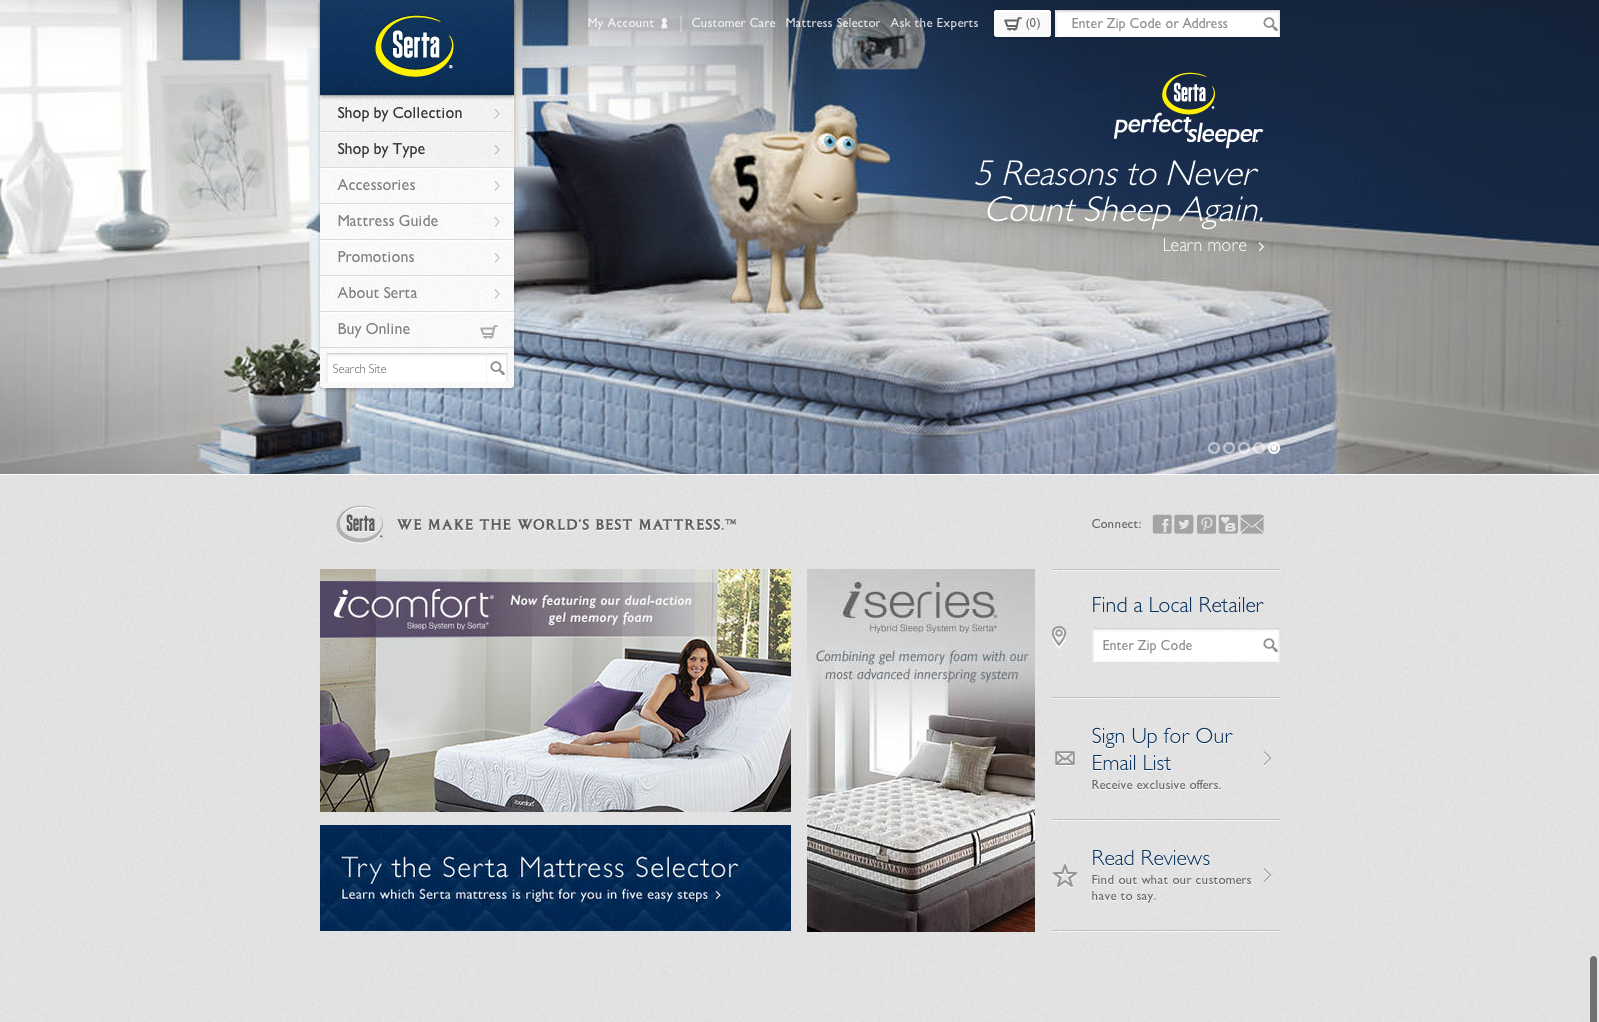 Top 365 Complaints And Reviews About Serta Mattress